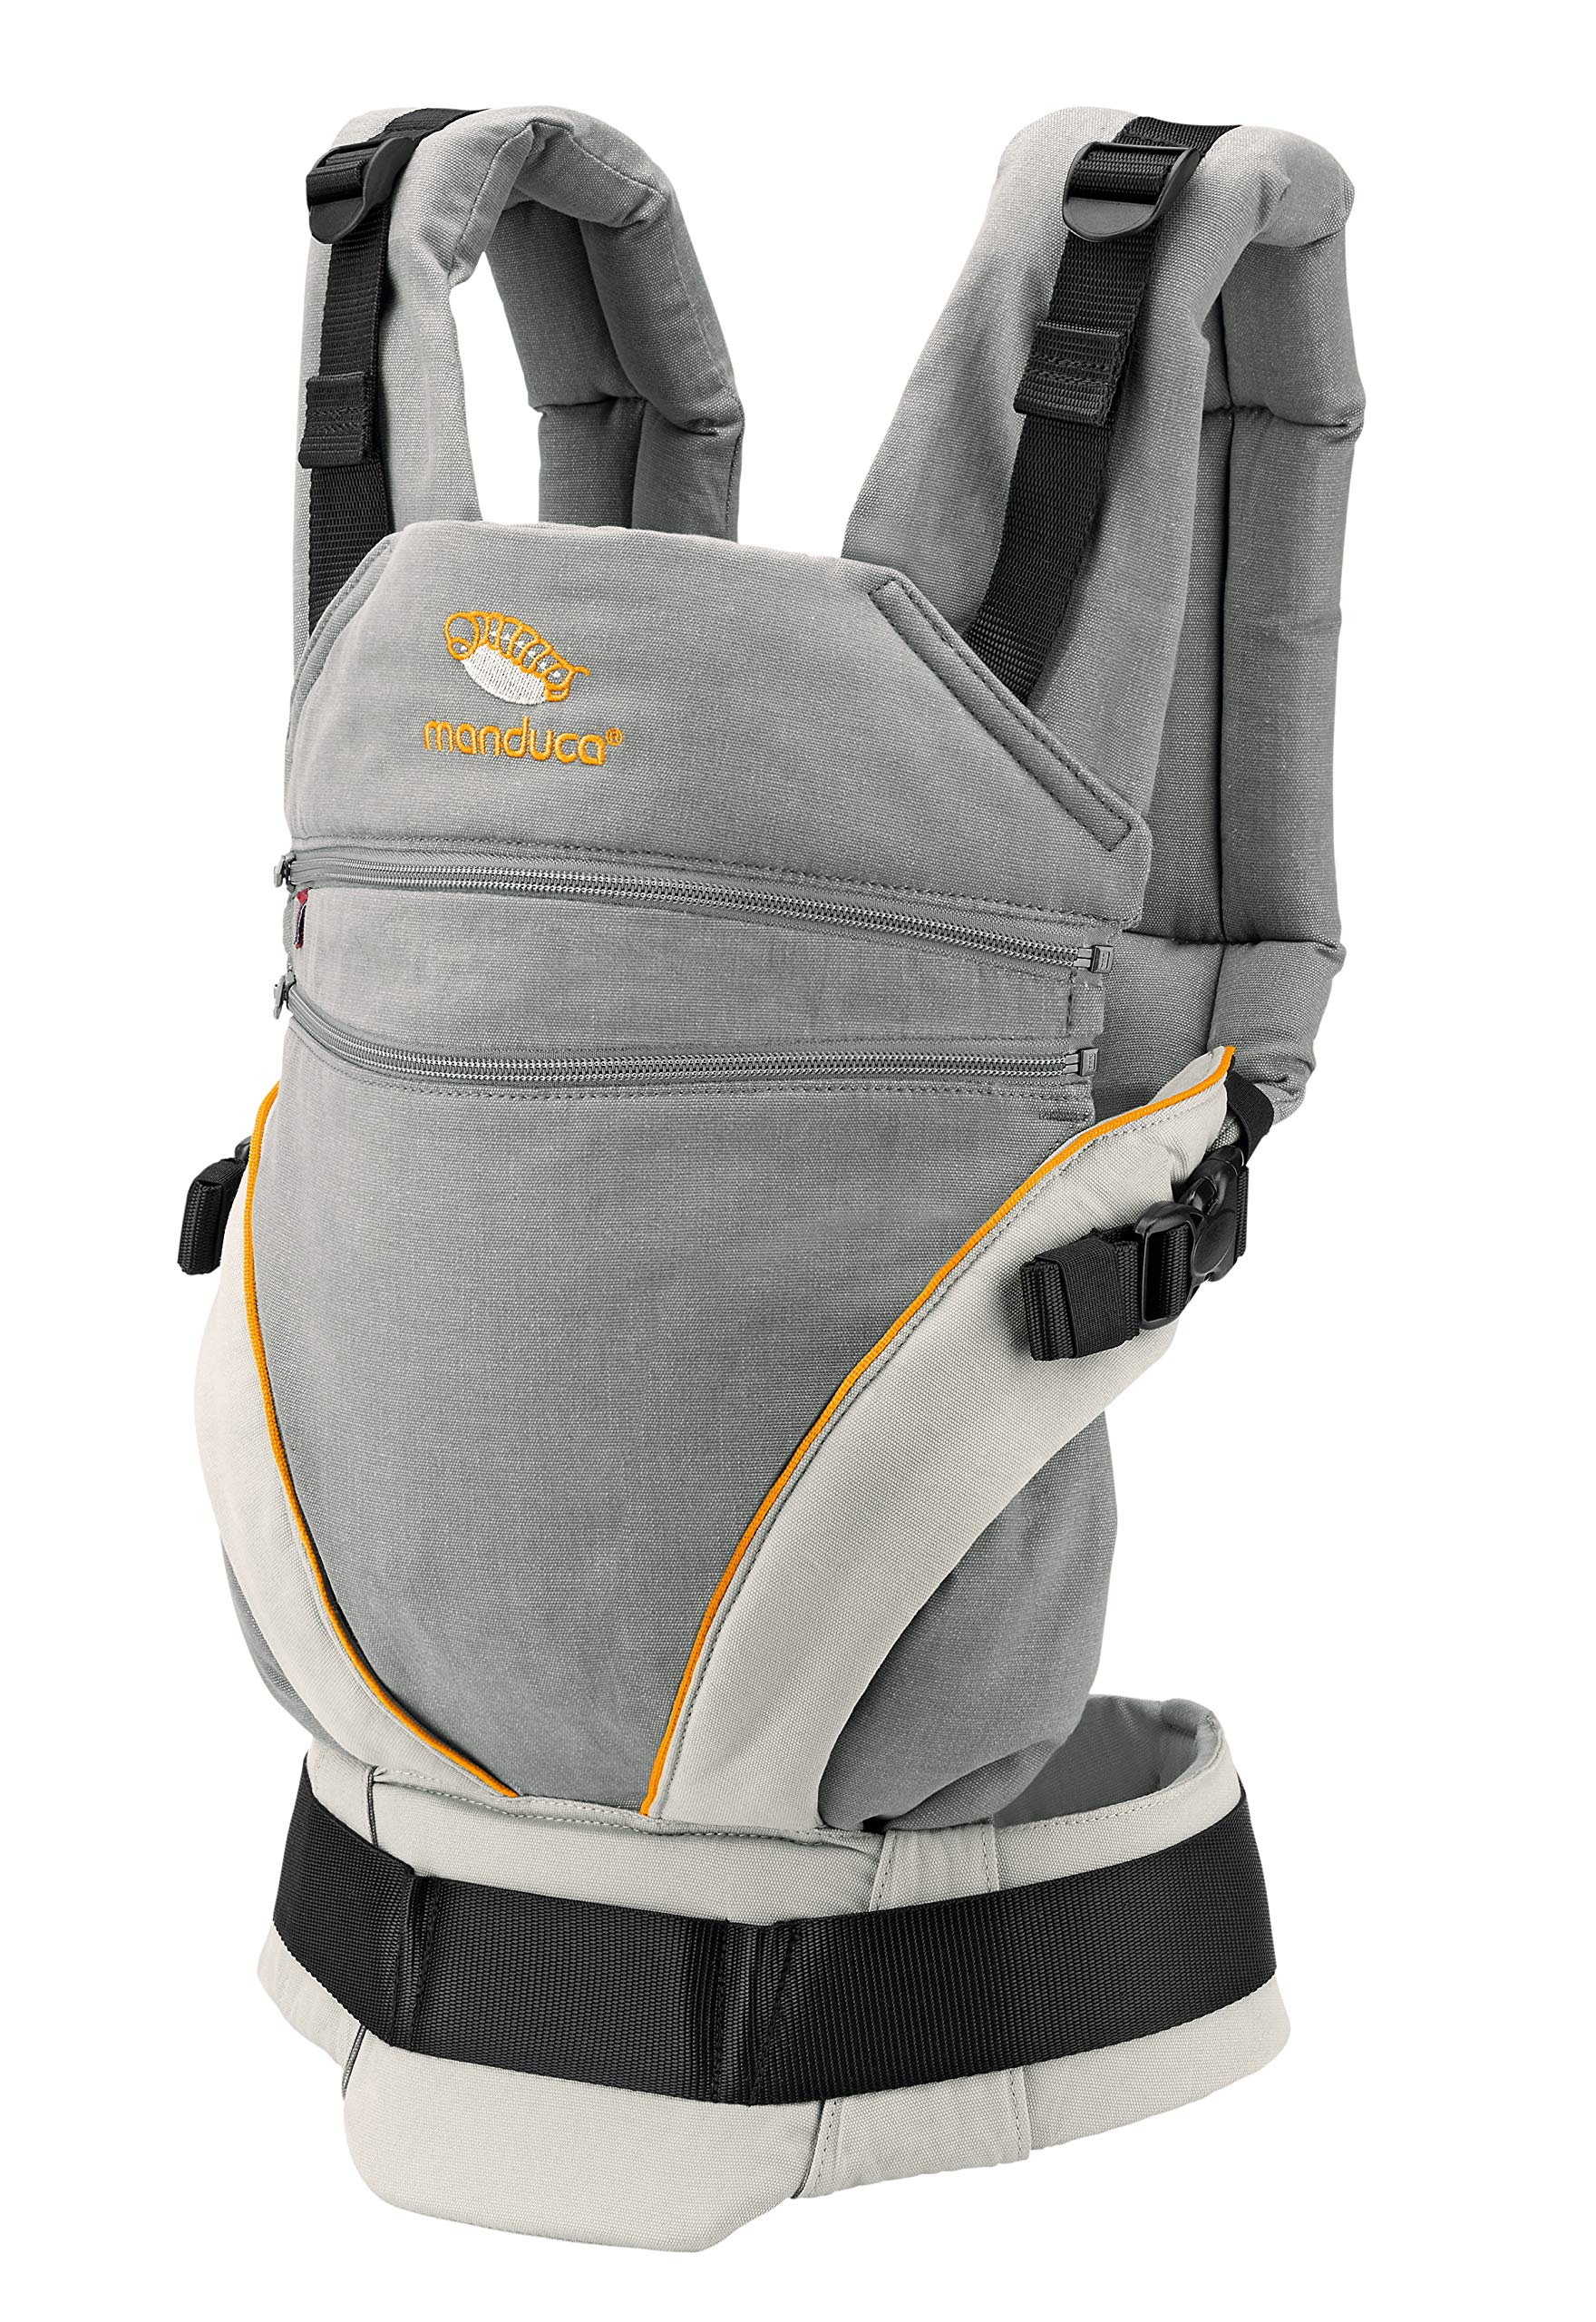 manduca XT > grey- orange < Baby Carrier with Adjustable Seat, 3 Carrying Positions (Front, Hip & Back), No Infant Insert Needed, Organic Cotton, Grows with your Baby from Birth to Toddler (3.5- 20kg) Manduca This baby carrier adapts from newborn to toddler. Infinitely adjustable seat (16-50cm) without buttons, knots, Velcro or cord system. Novel tension arches support baby's spine & hip Three height options thanks to the patented back extension & integrated zip-in. Multifunctional headrest (classic hood or rolled up as neck support). No accessories needed. One Size 3 carry positions: front, hip and back carrier. Not intended for face-out position. Supports the squat-spread position (M-Position) 9